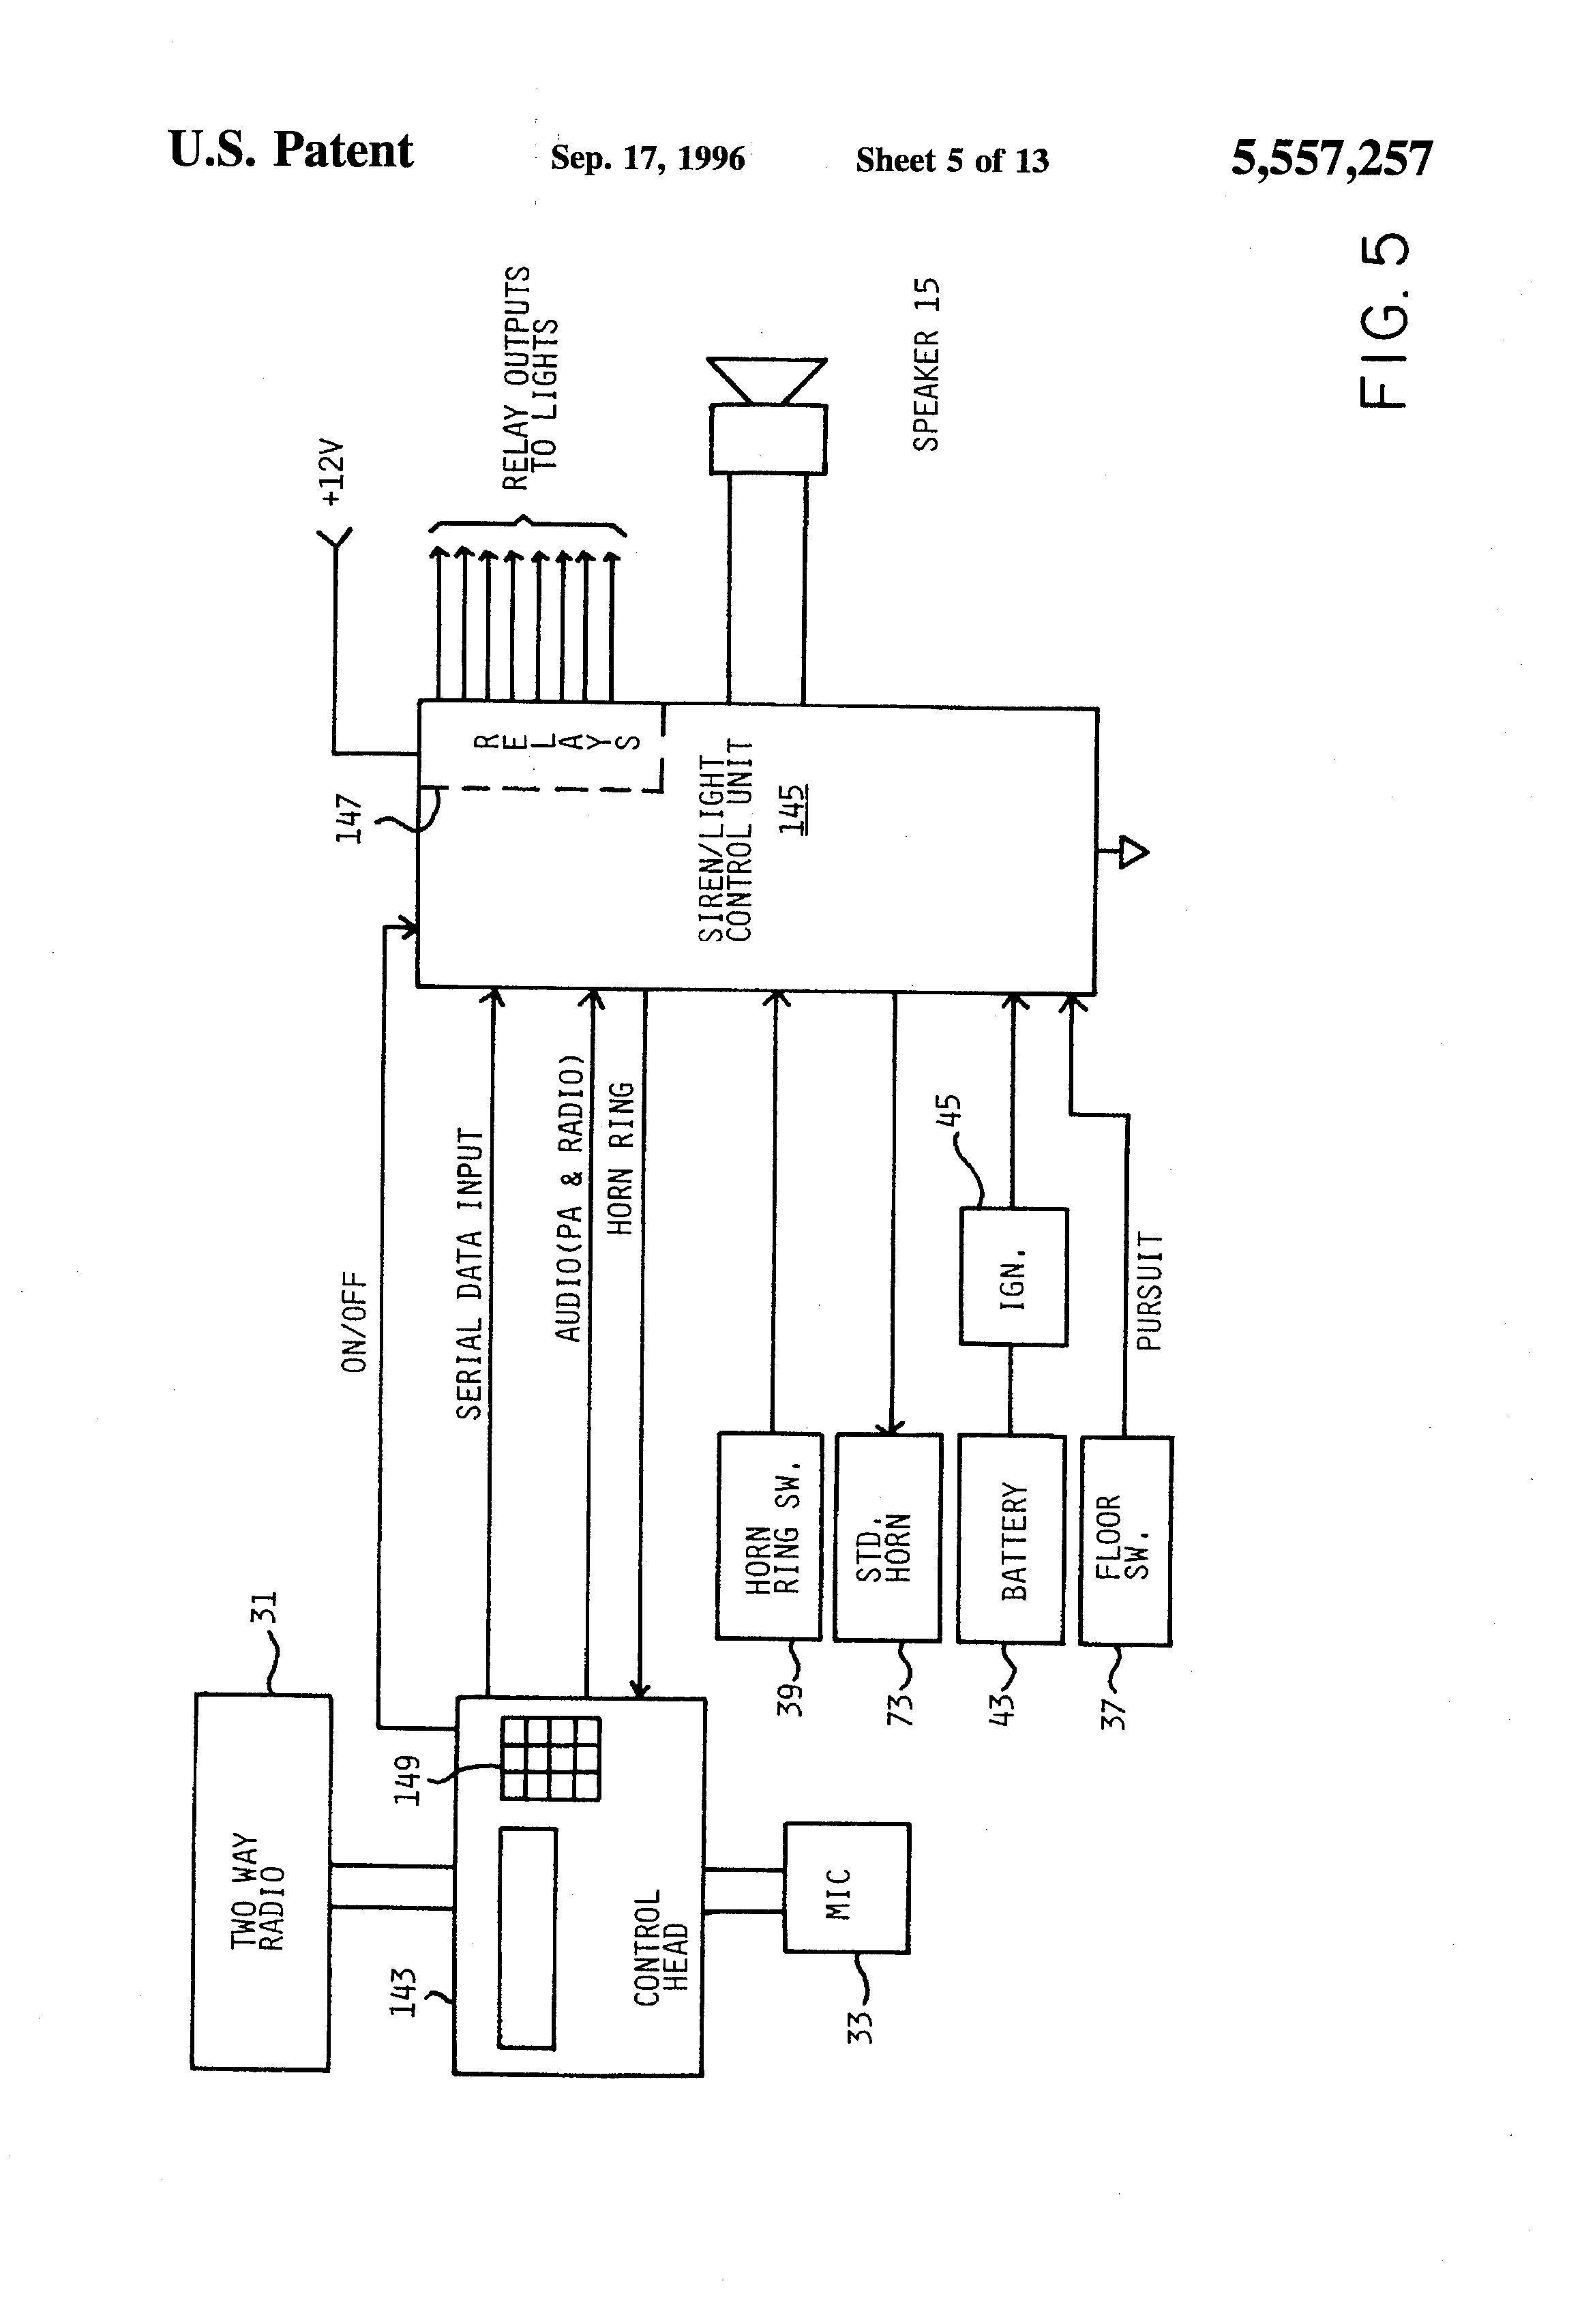 federal signal pa300 wiring diagram Download-Category Wiring Diagram 114 Federal Signal Pa300 Wiring Diagram Sample 11-l